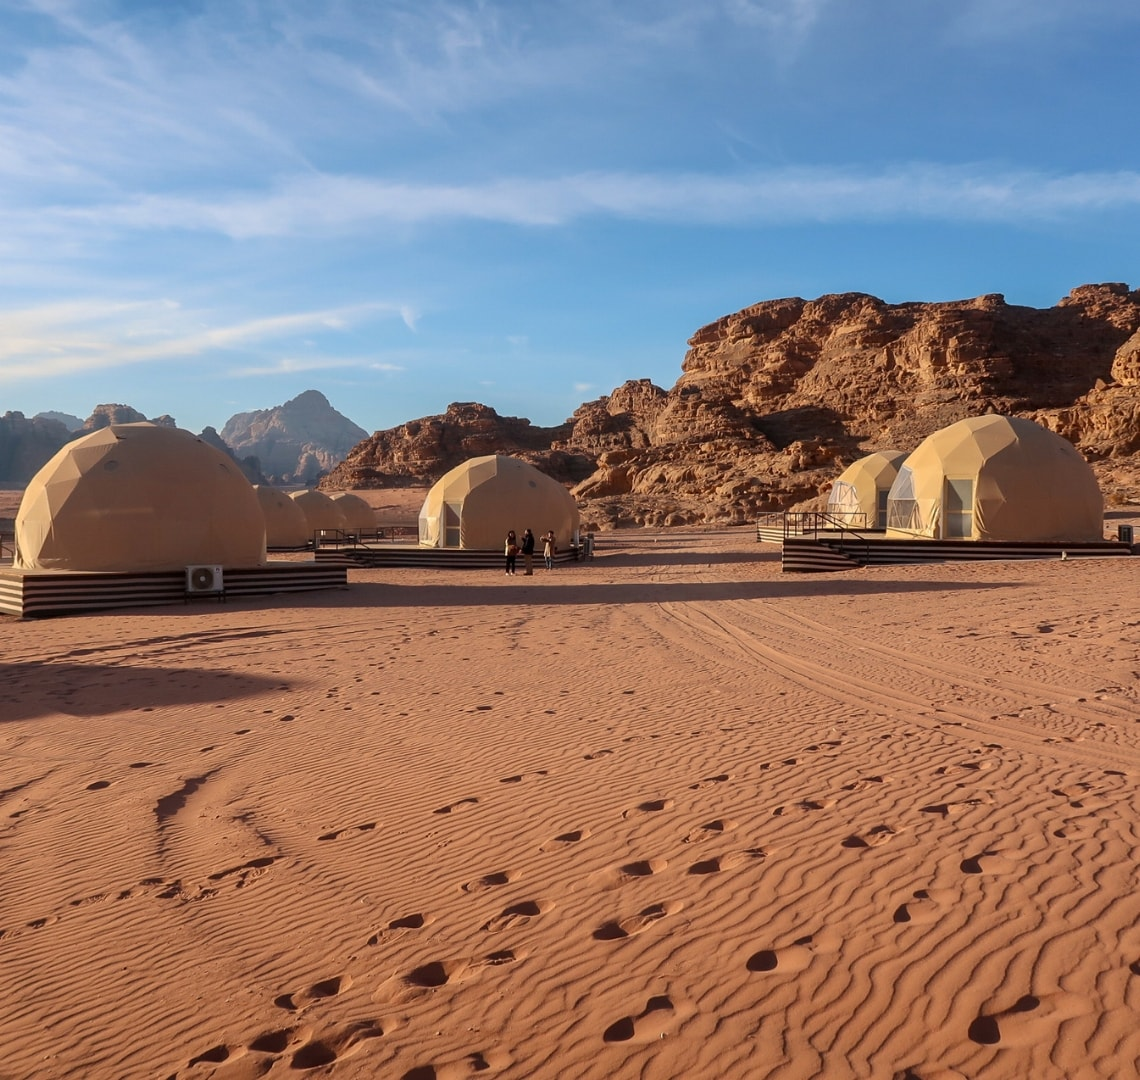 How to have an epic family holiday - martian dome tents in Wadi Rum